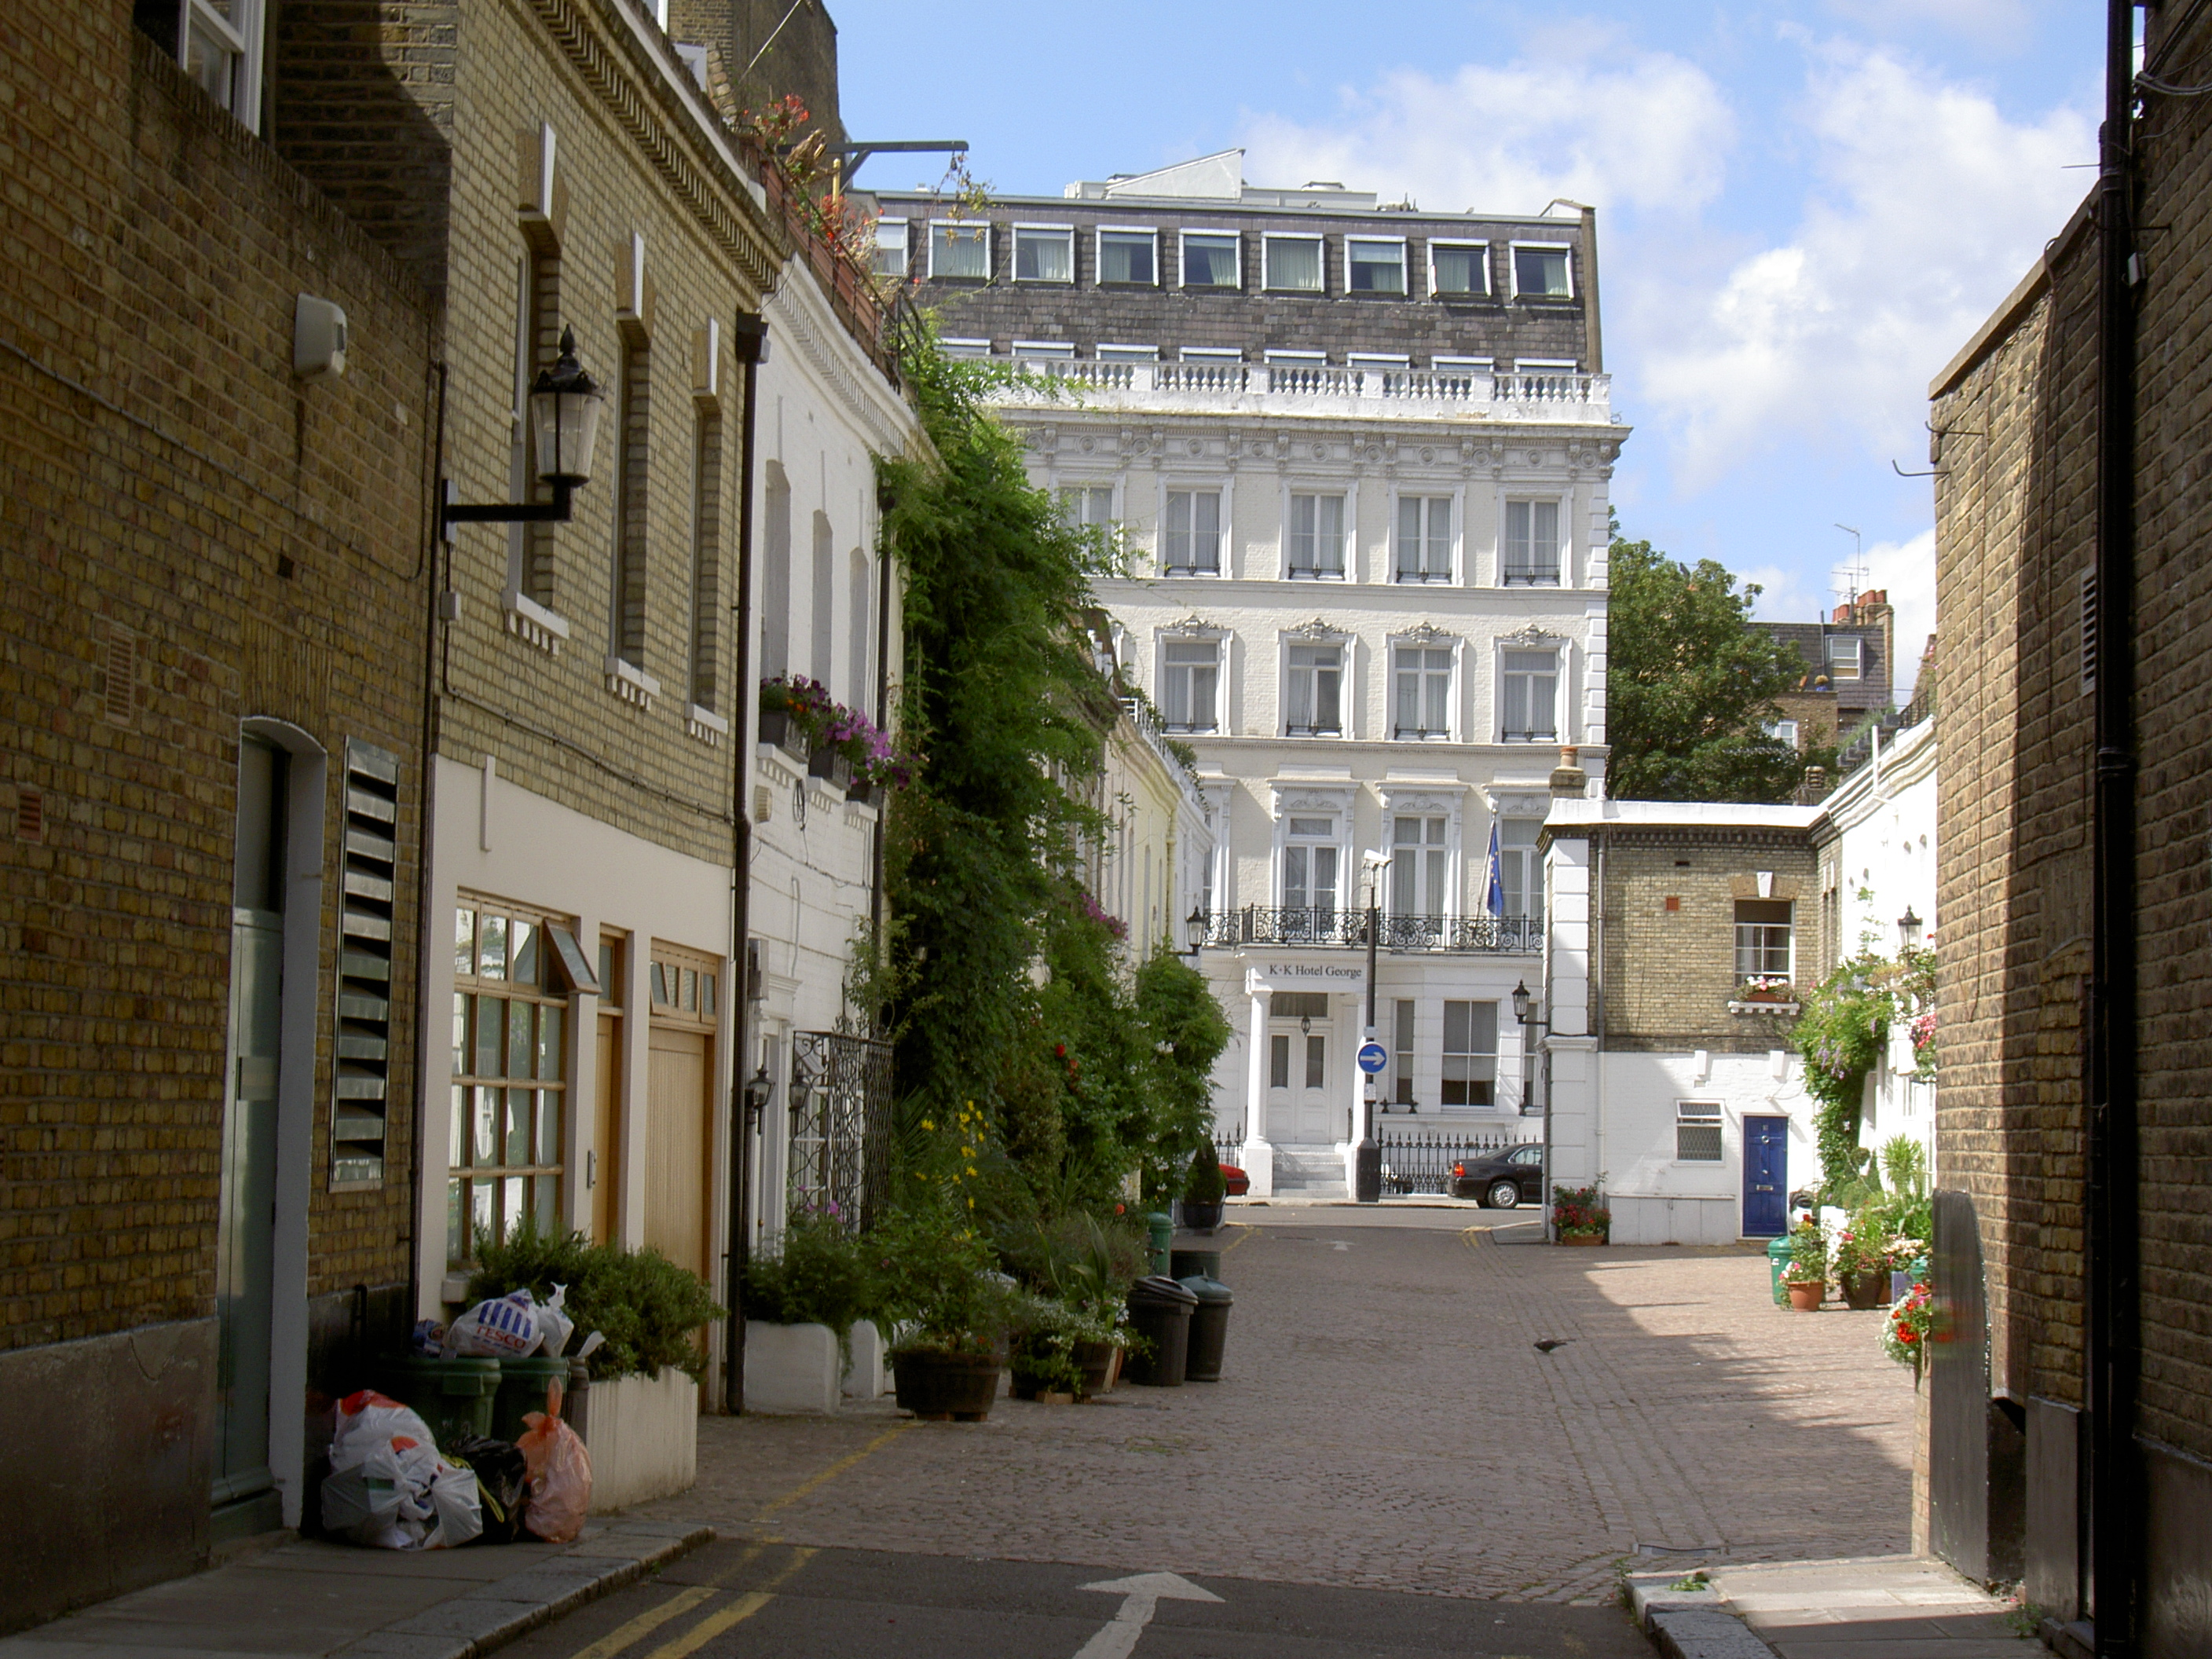 Typical_Street_In_The_Royal_Borough_Of_Kensington_And_Chelsea_In_London